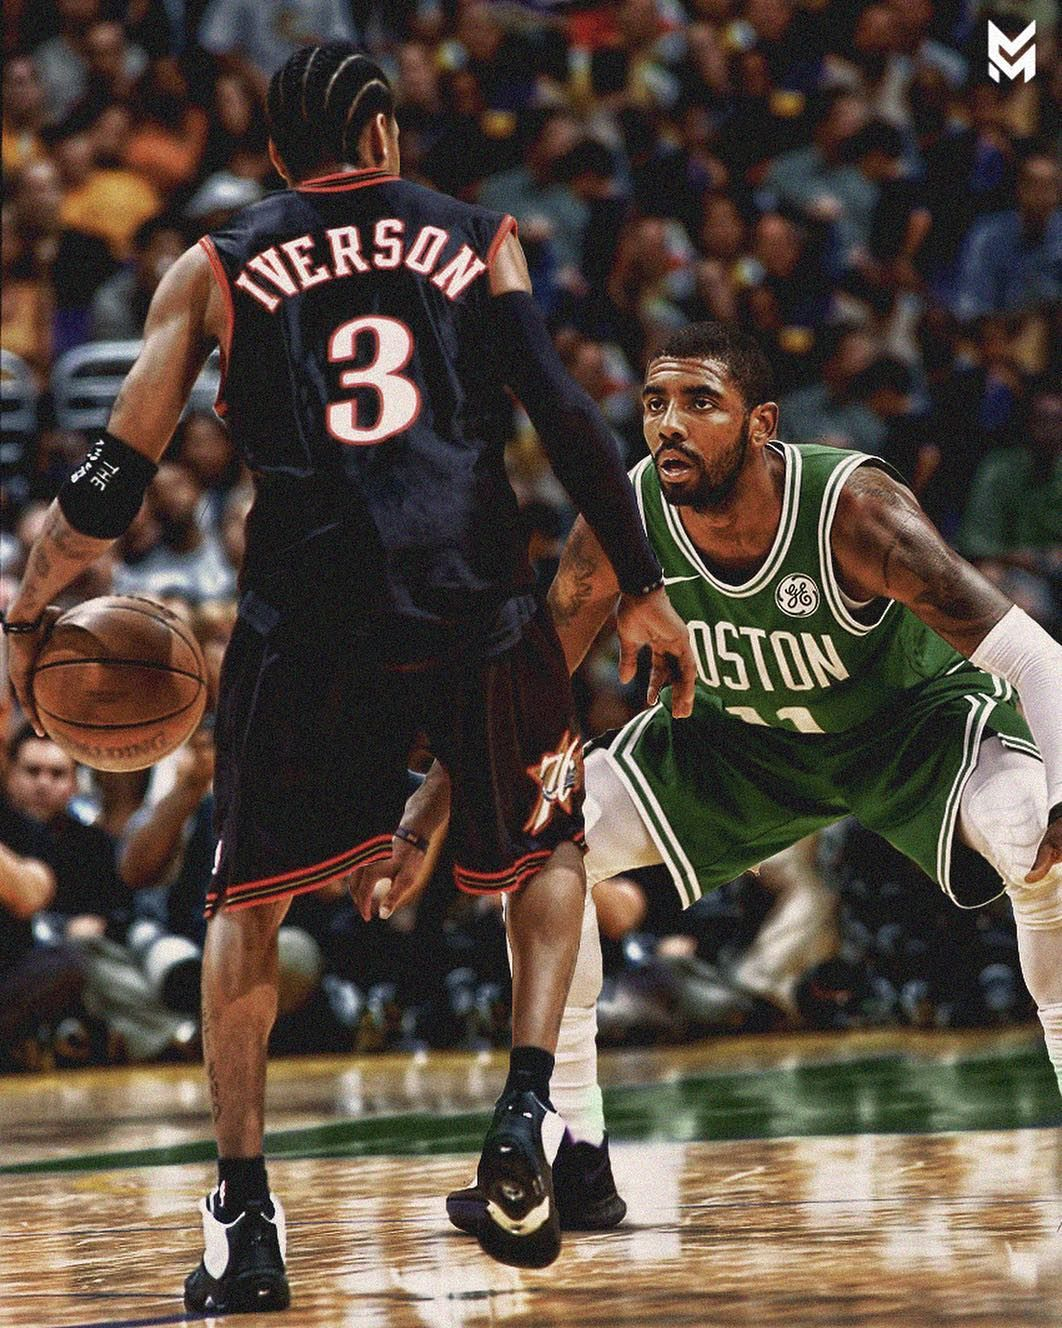 3 V 11 Posterizes Projecthoops Kyrieirving Alleniverson Ai Iverson Kyrie Celtics Sixers Boston Philly Green Bas Nba Sports Nba Players Nba Legends